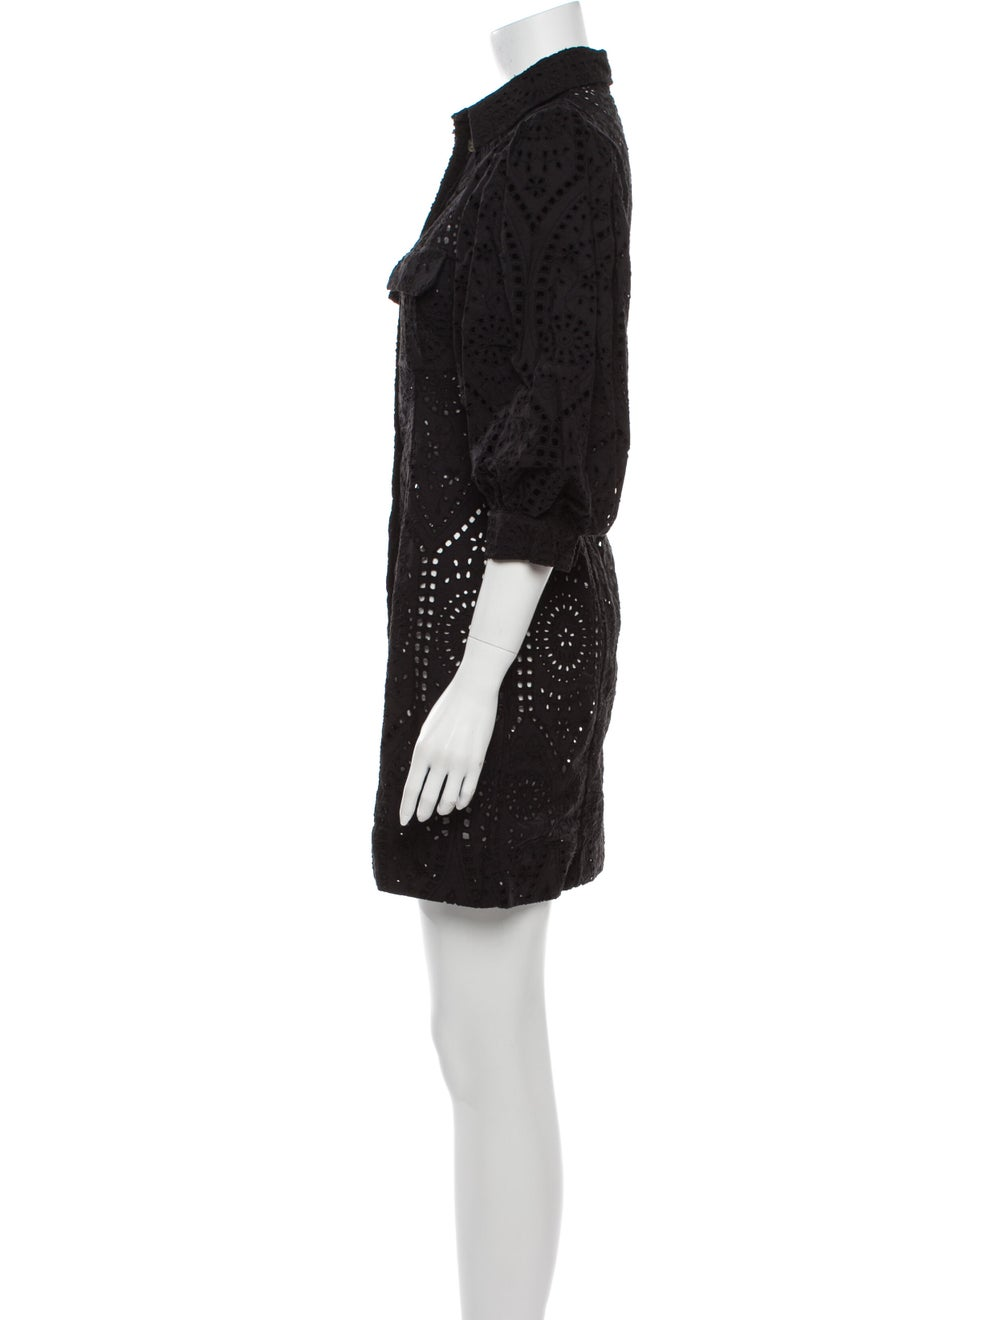 Ganni Lace Pattern Mini Dress Black - image 2